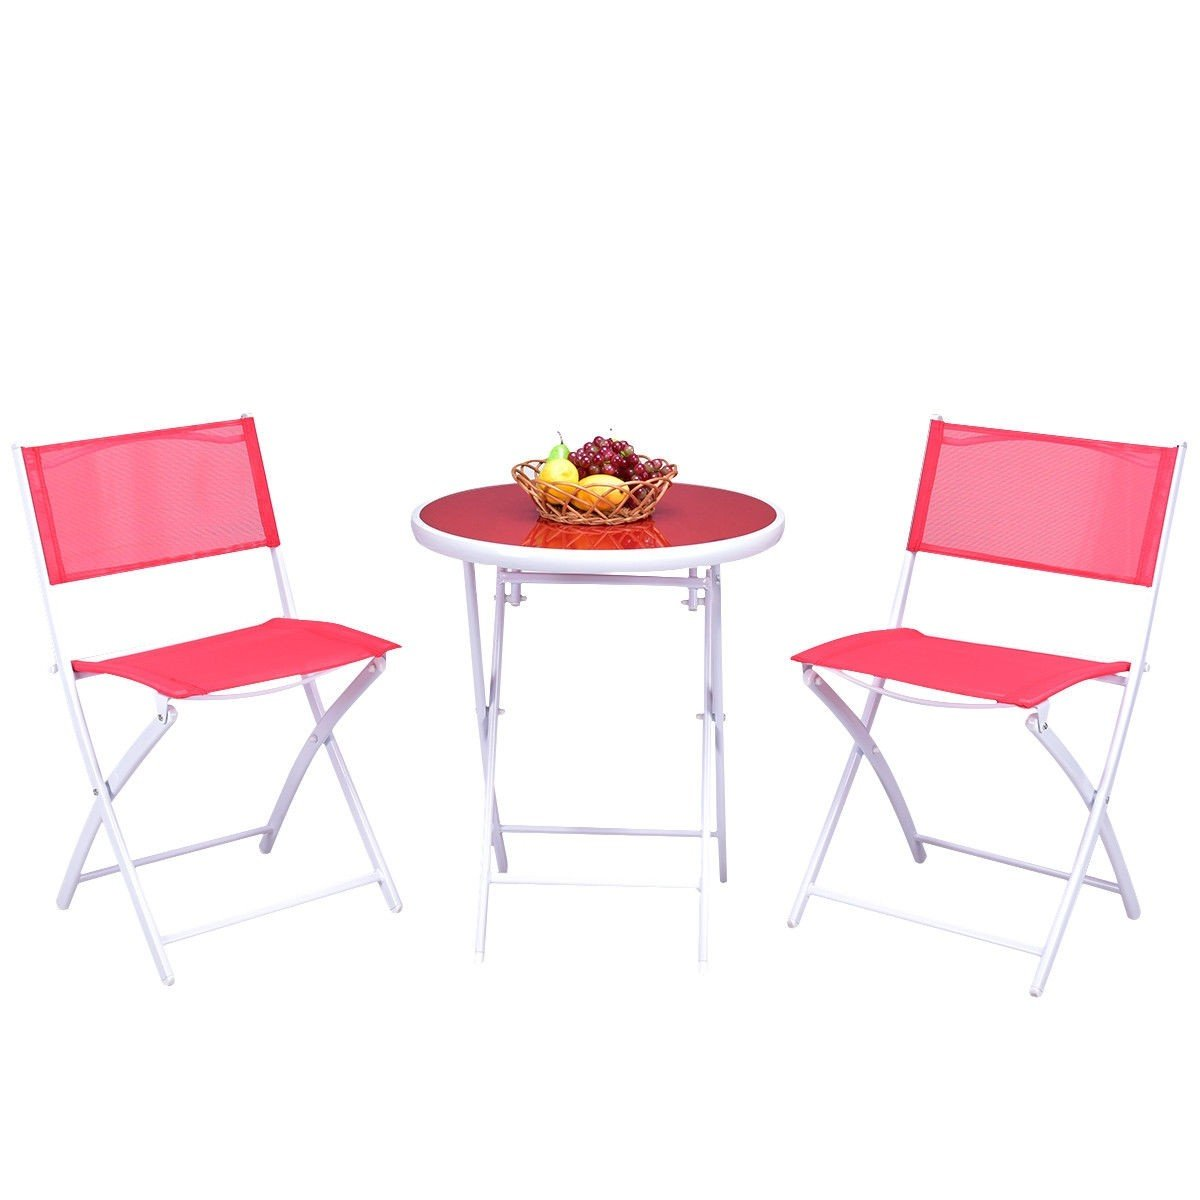 Custpromo 3 Pcs Bistro Set Folding Table and Chair Set Metal Frame Tempered Glass Top Garden Backyard Furniture (Red)